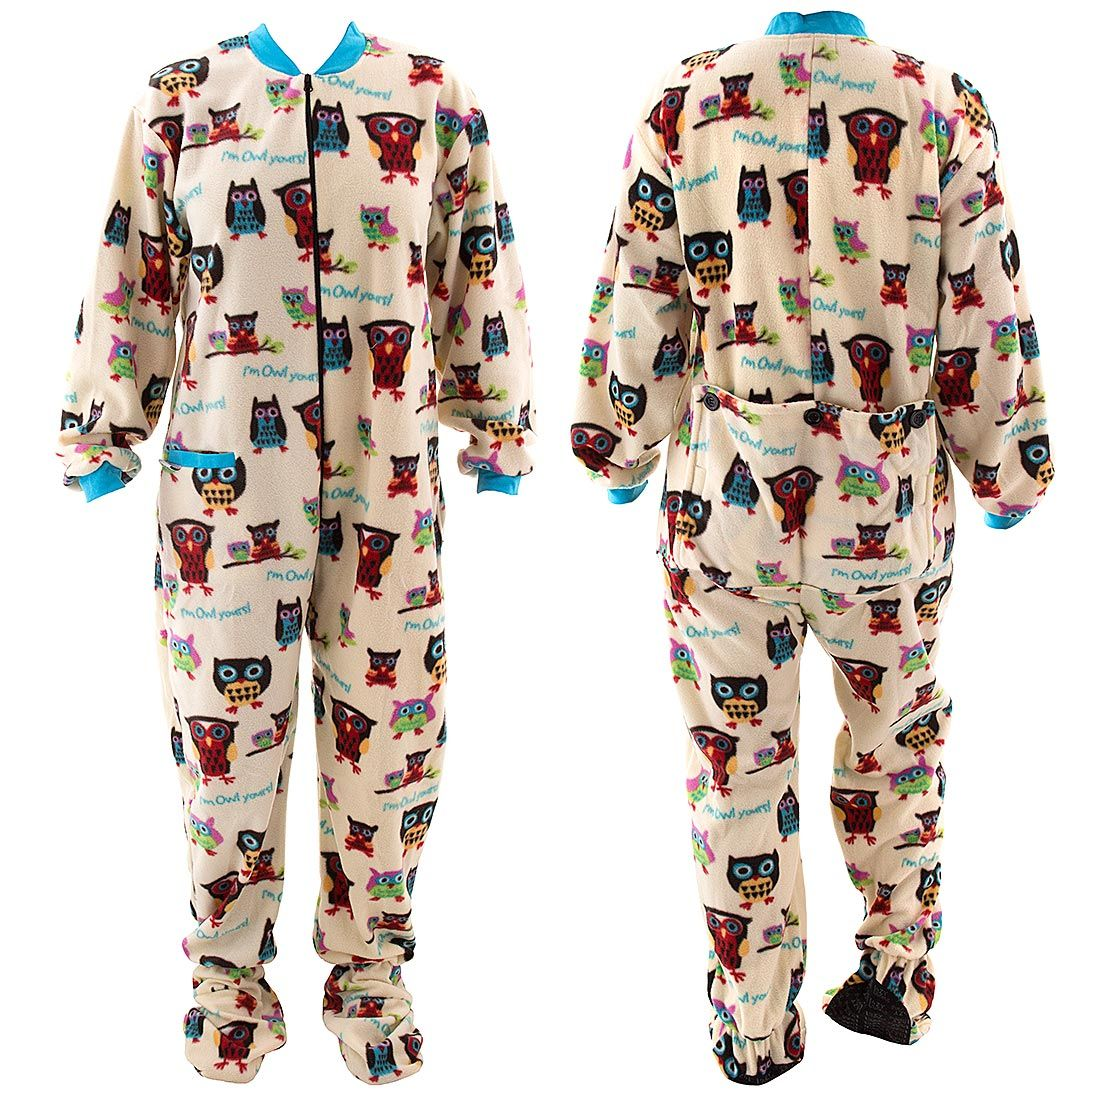 8d9f96461a Lazy One I m Owl Yours Footed Pajamas for Adults - Lazy One Pajamas    Nightshirts